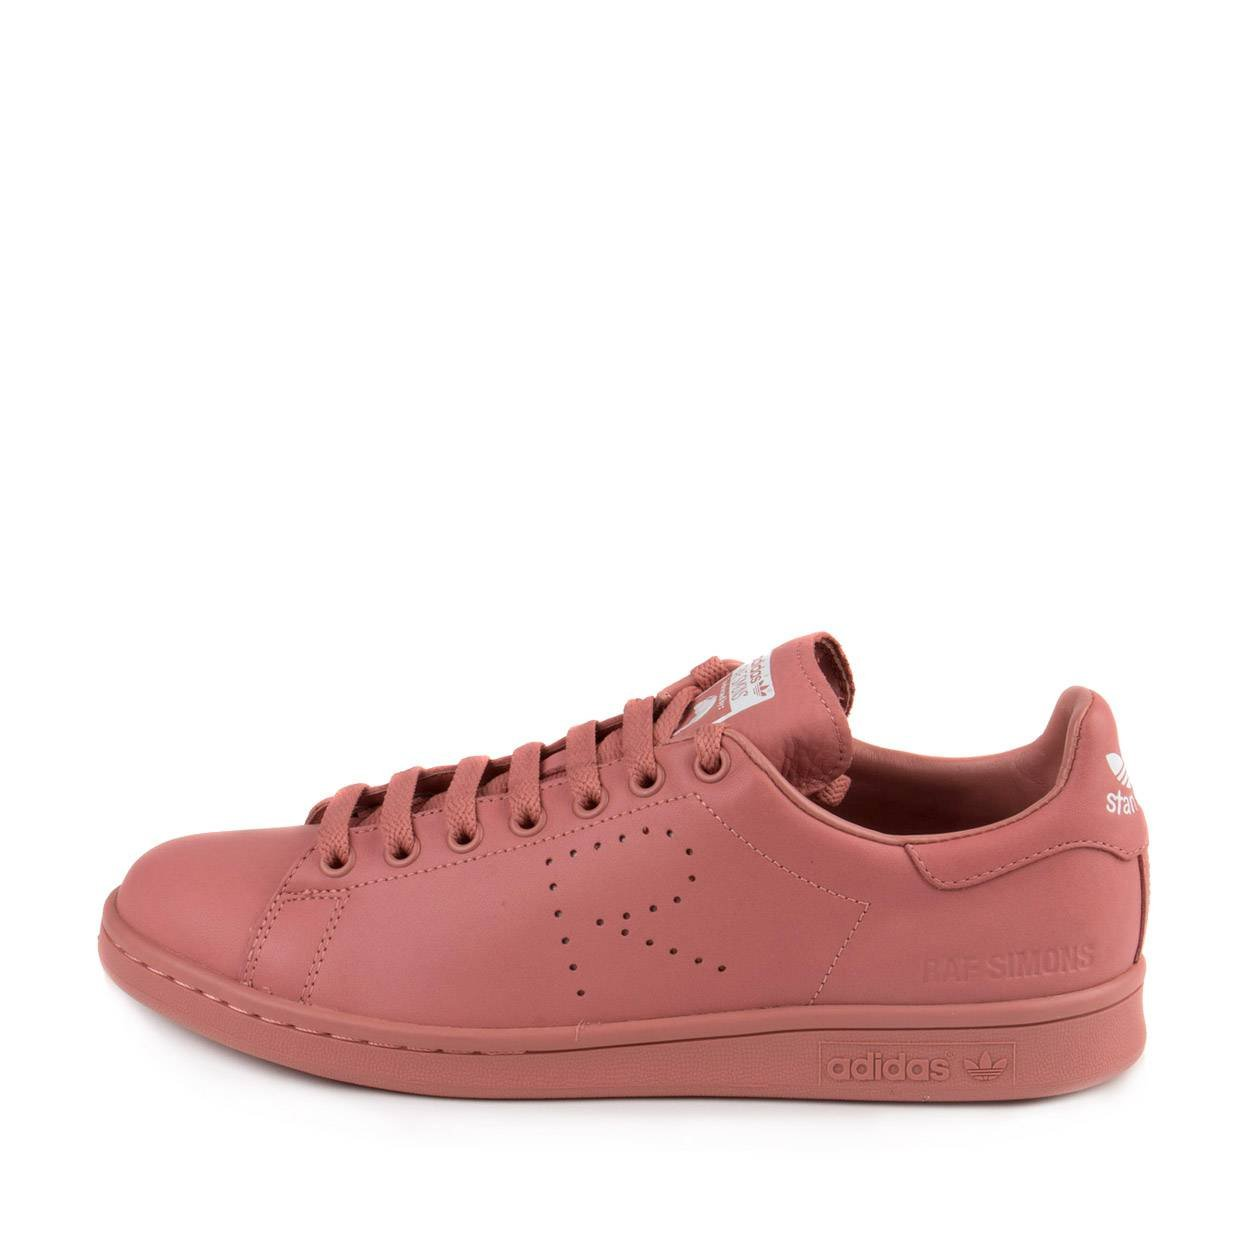 promo code 71992 4c9ff Amazon.com | adidas by RAF Simons RAF Simons Stan Smith, Ash ...